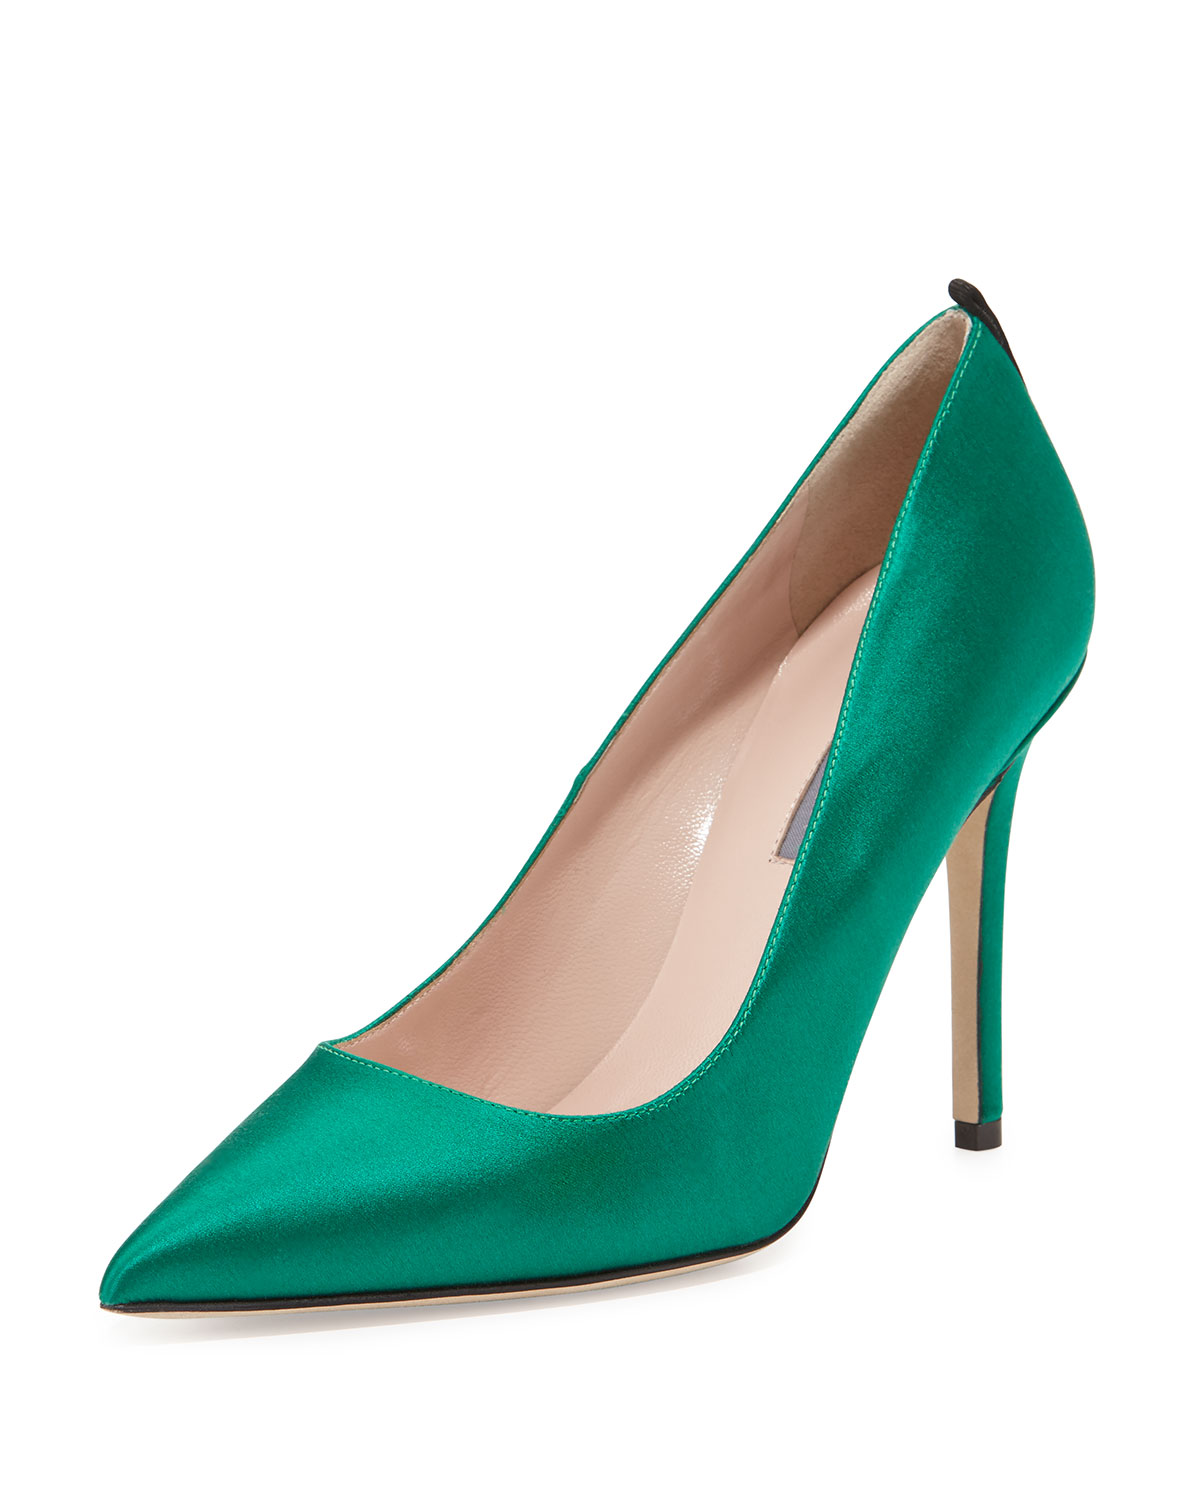 Fawn Satin Pointed-Toe Pump, Emerald (Green), Women's, Size: 38B/8B - SJP by Sarah Jessica Parker